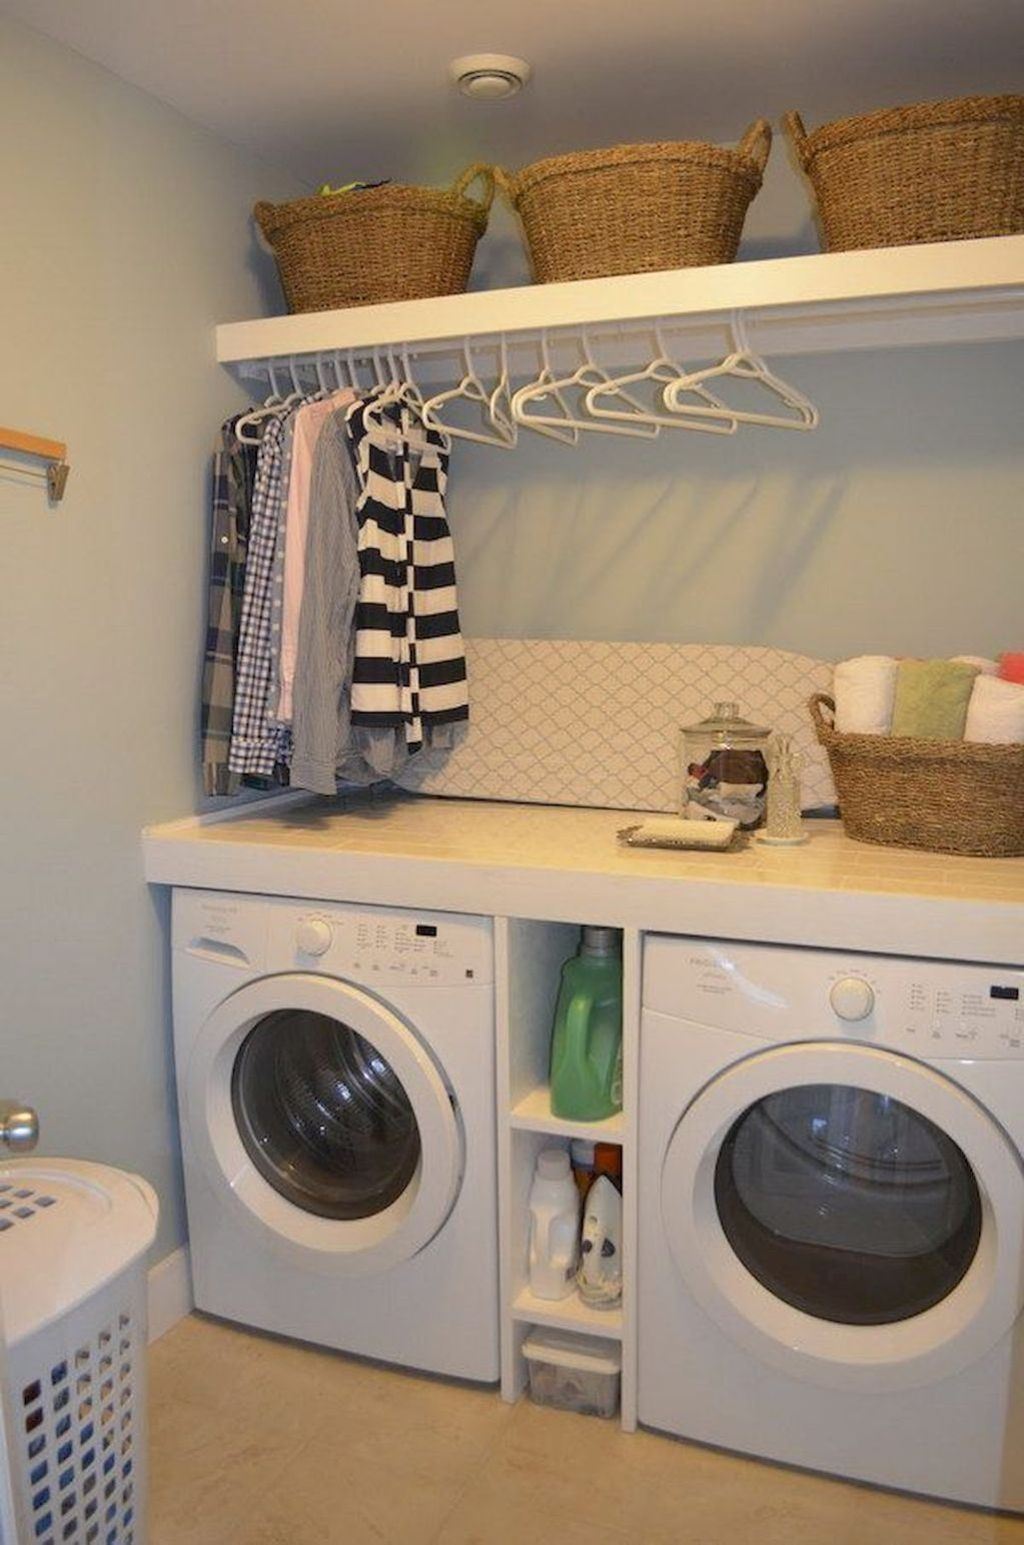 Favored Laundry Room Organization Ideas To Try 34